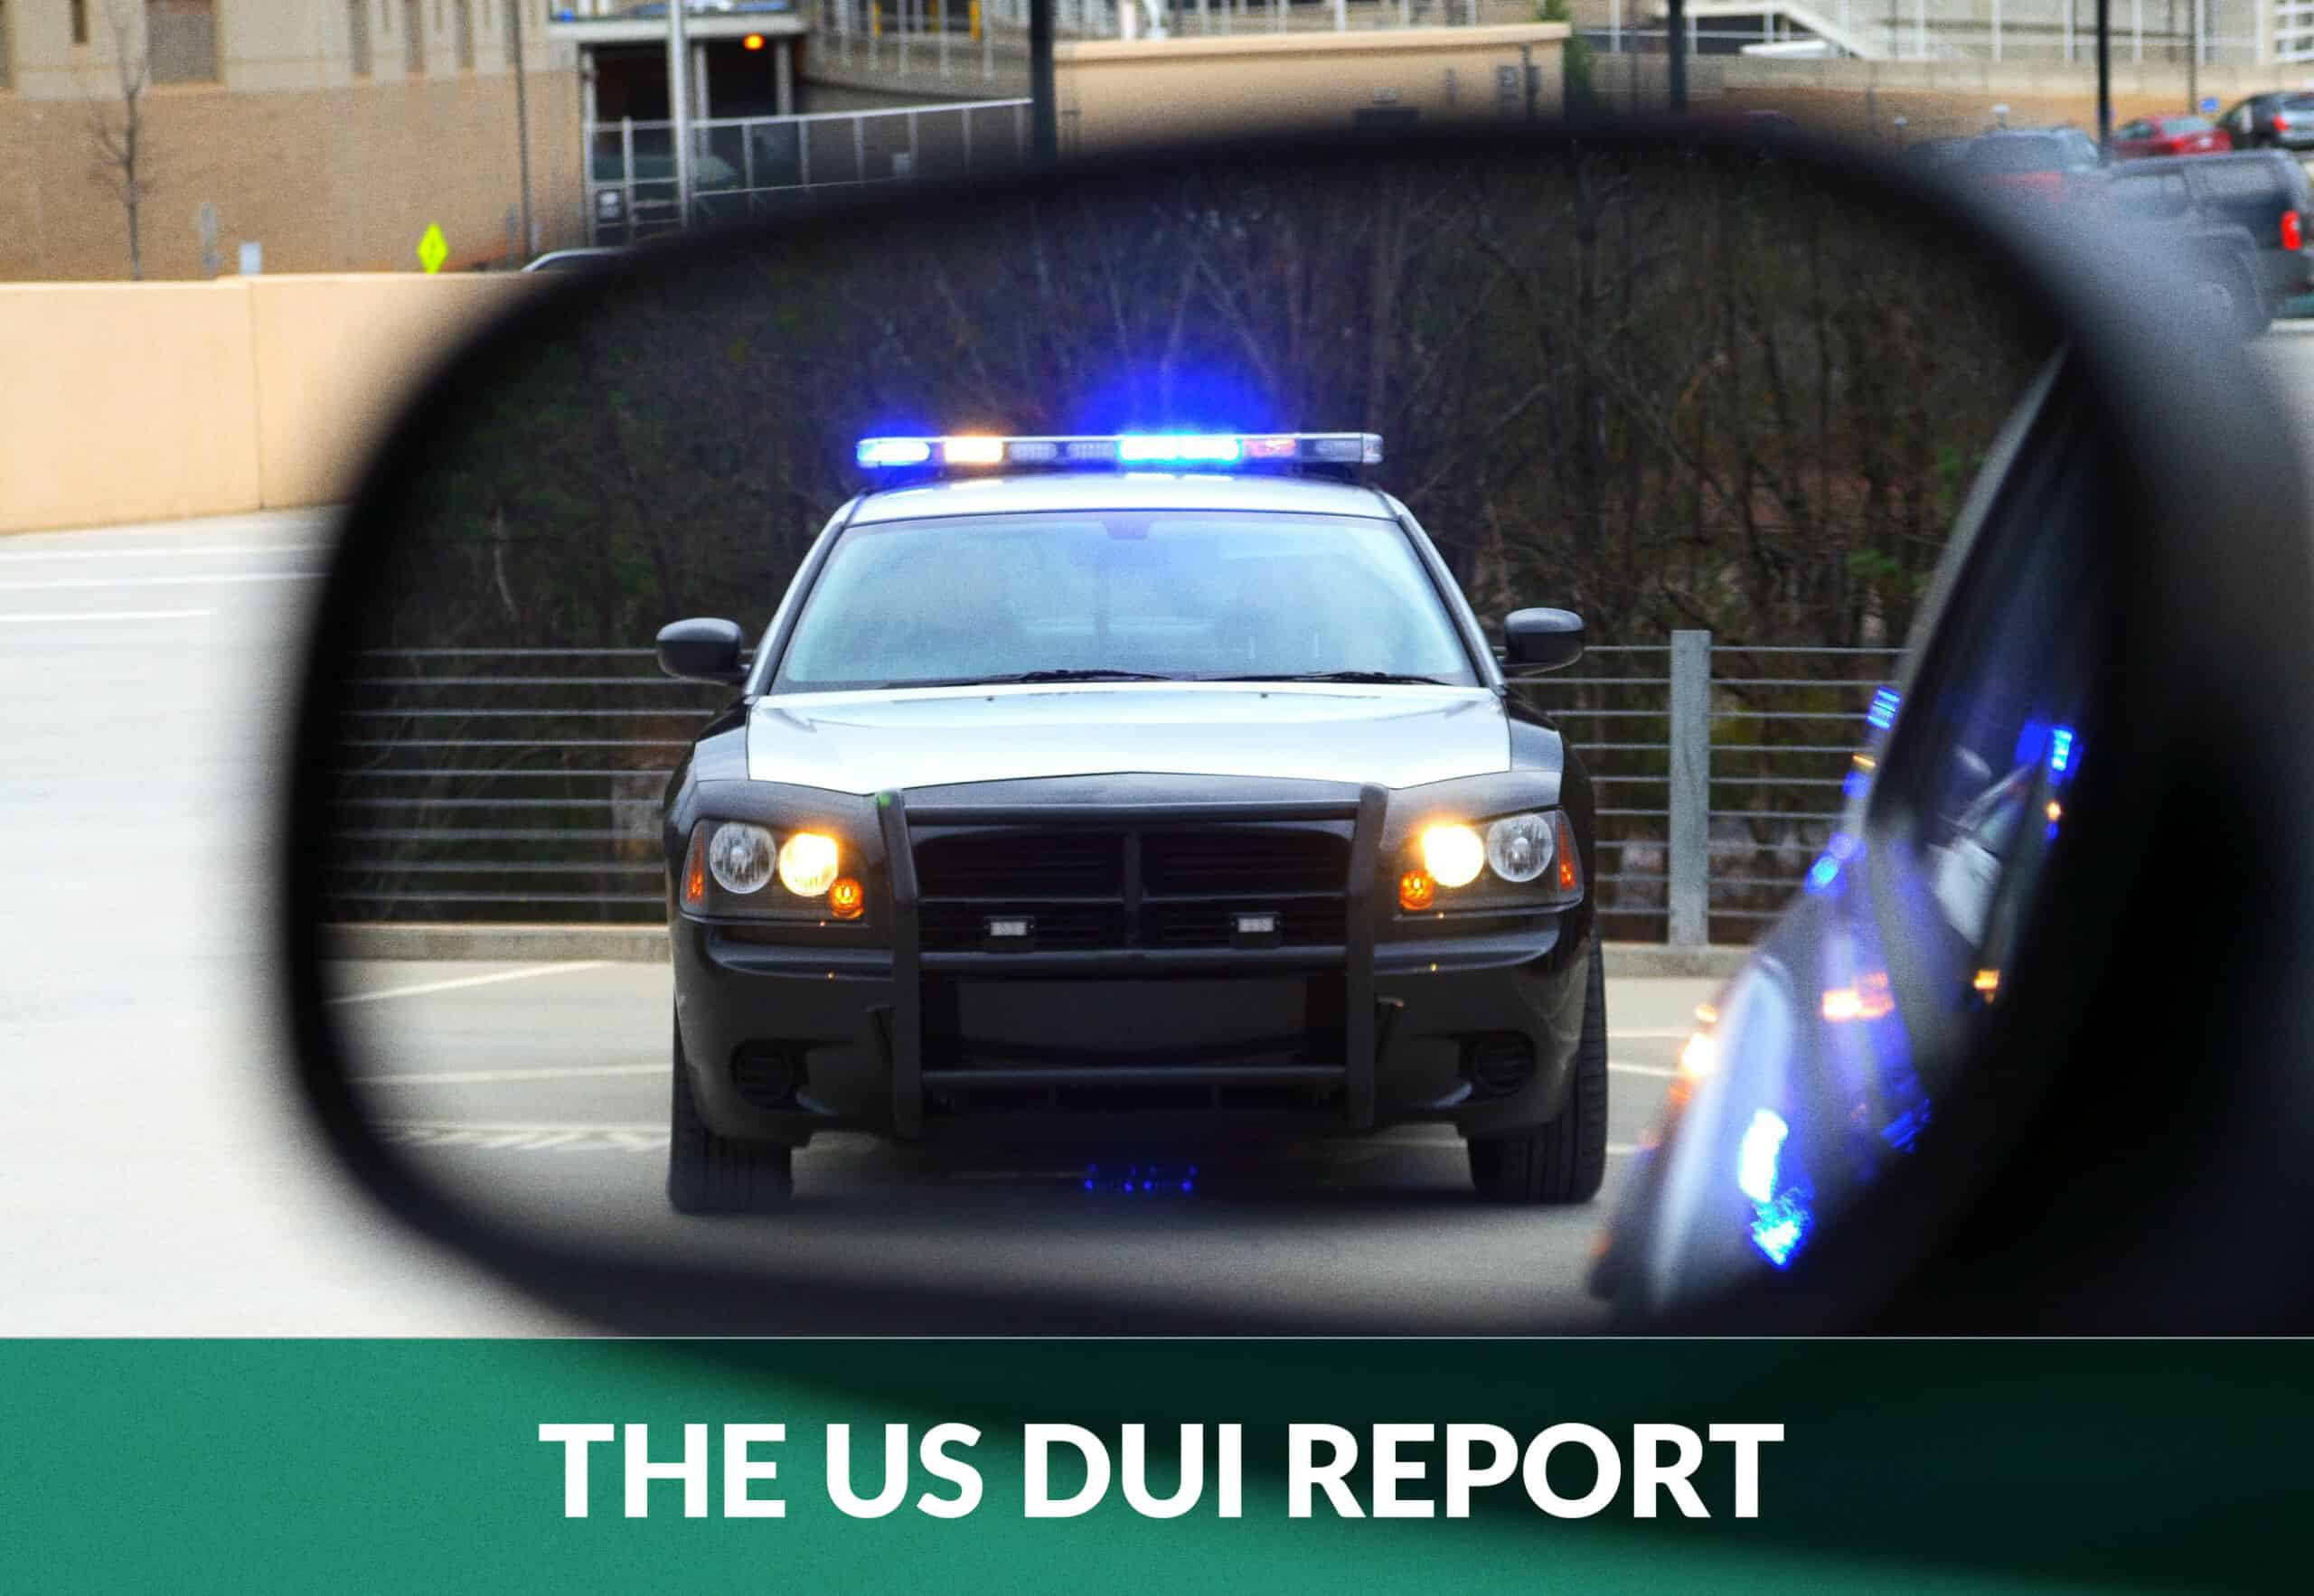 The us dui report